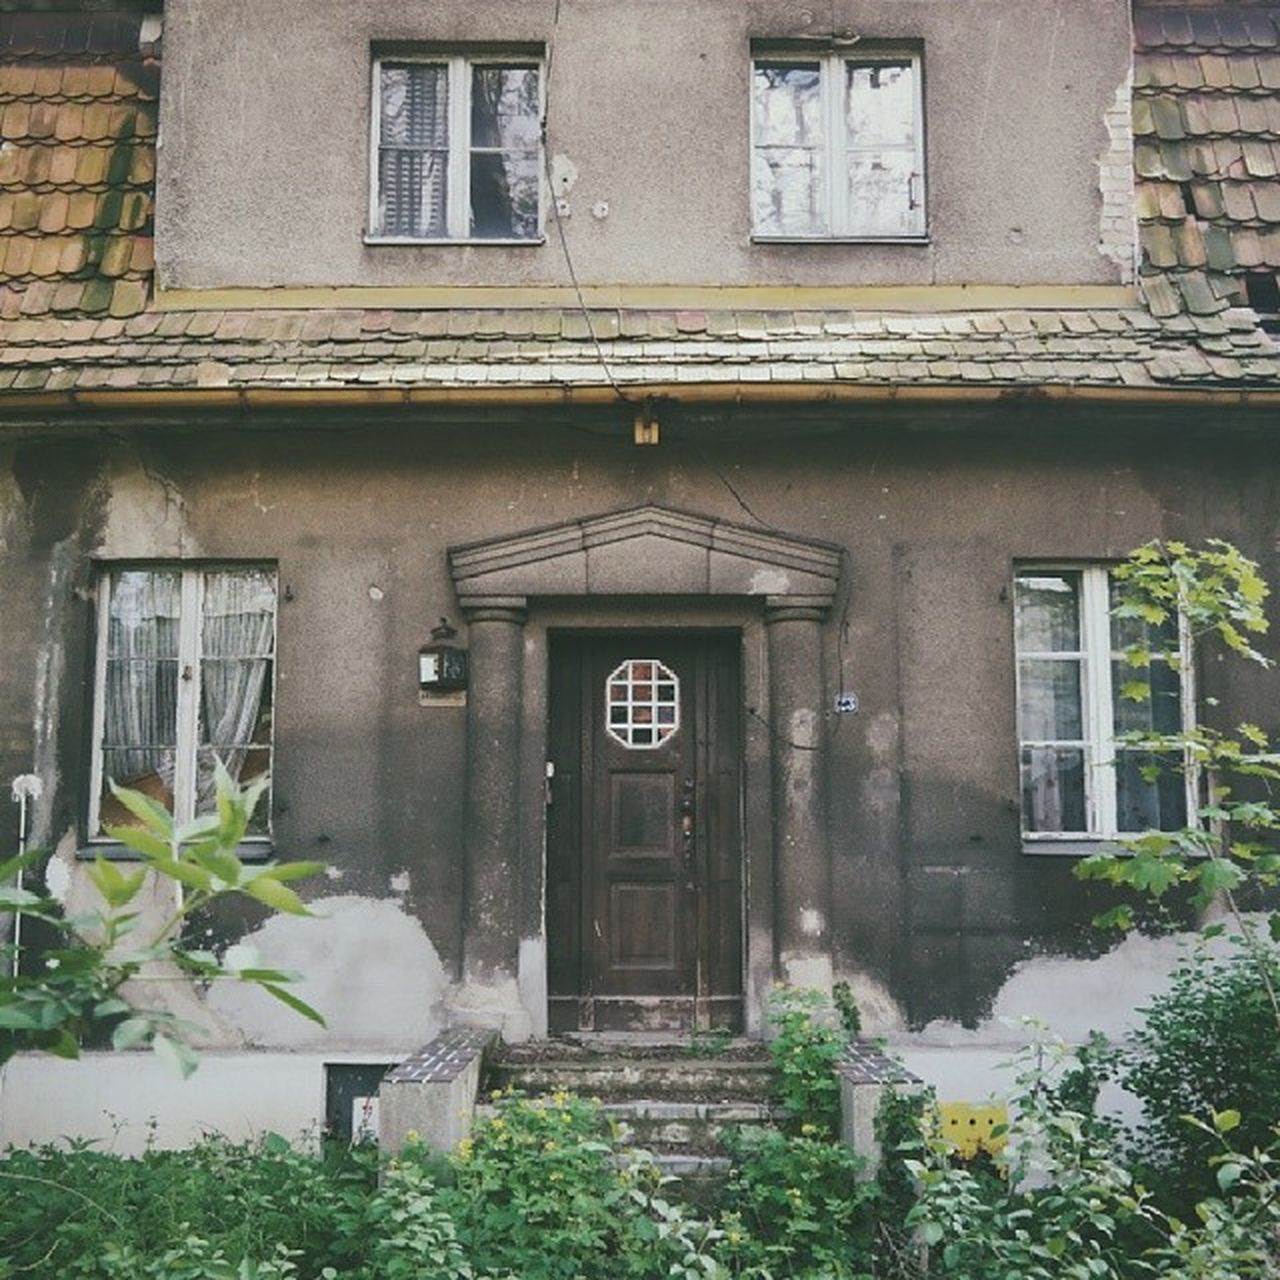 The Explorer - 2014 EyeEm Awards Detail Old Mission Mystery nostalgia hidden city nature force neglected mystery ruined abandoned solacz wild housing Poznań poznan symmetry vscopoland vscoaward vscocam